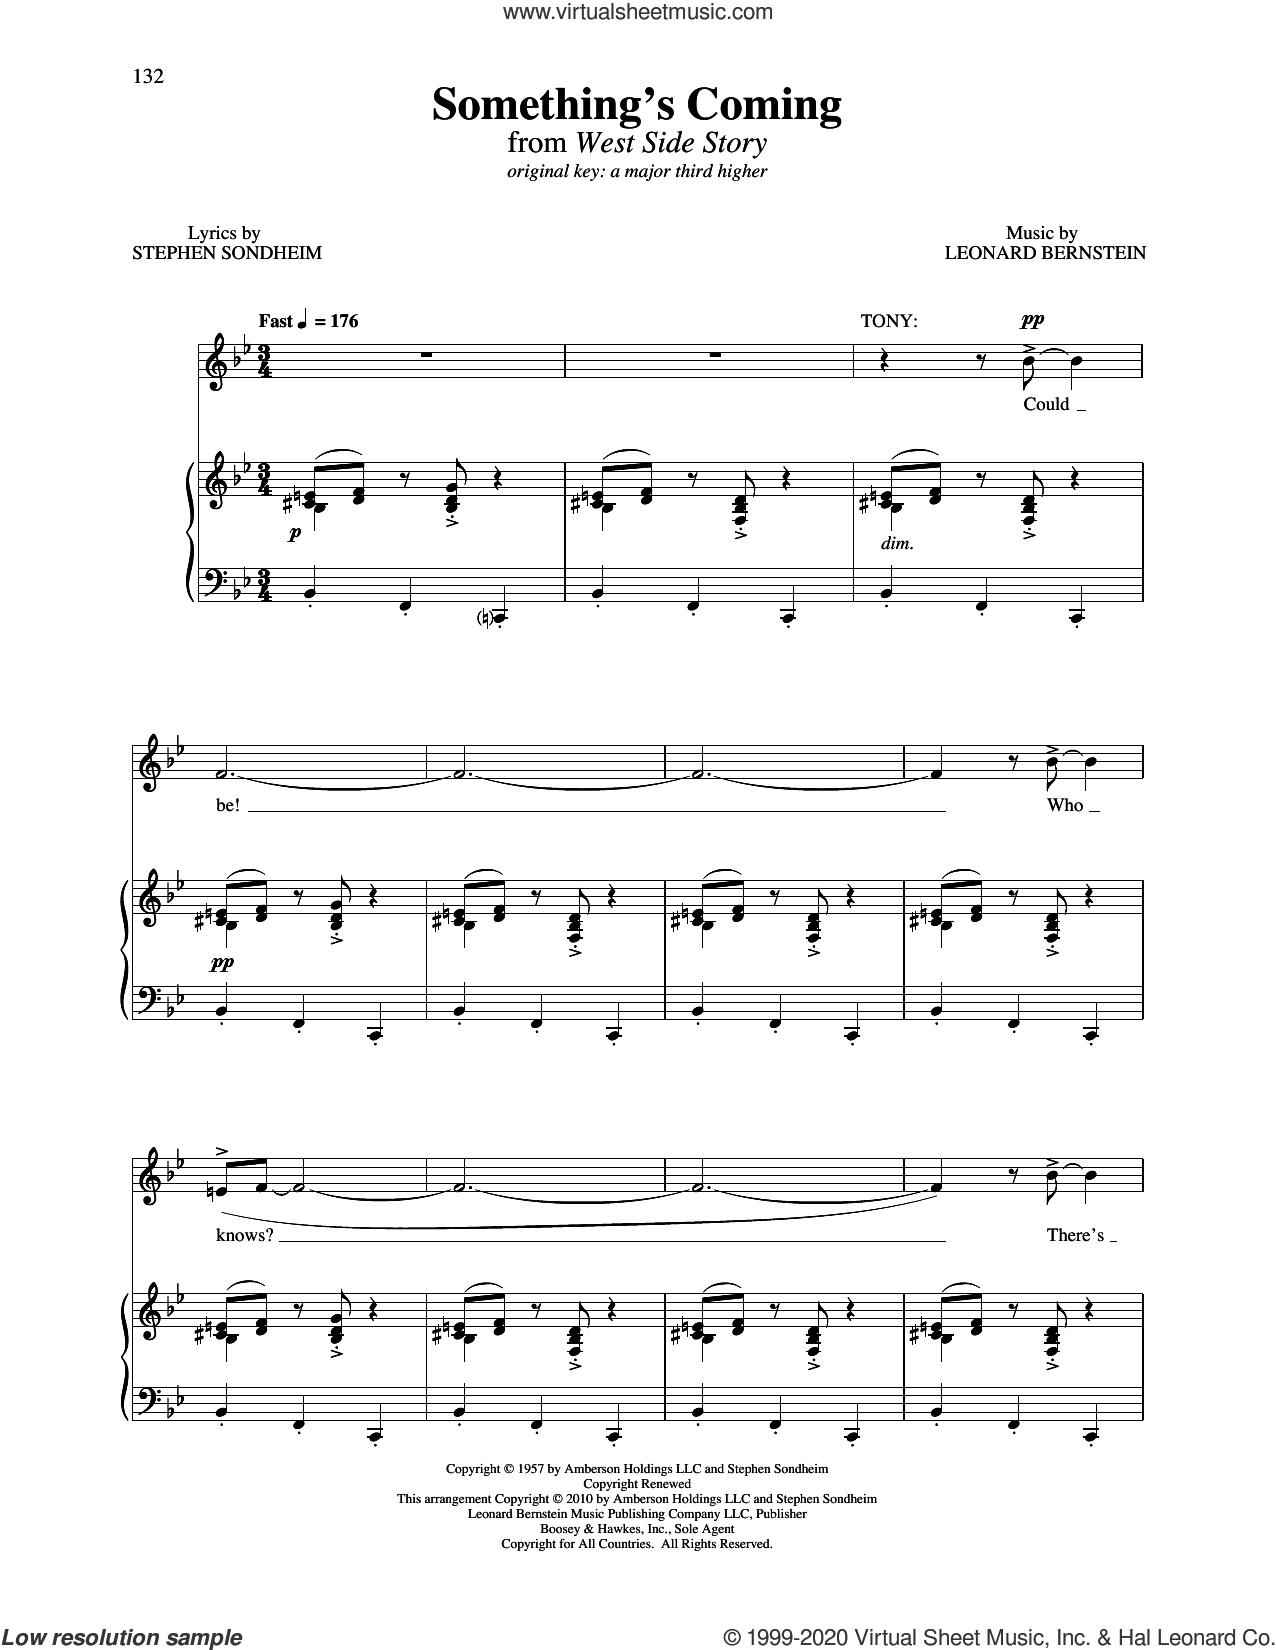 Something's Coming (from West Side Story) sheet music for voice and piano (Medium Low Voice) by Leonard Bernstein and Stephen Sondheim & Leonard Bernstein, Richard Walters and Stephen Sondheim, intermediate skill level